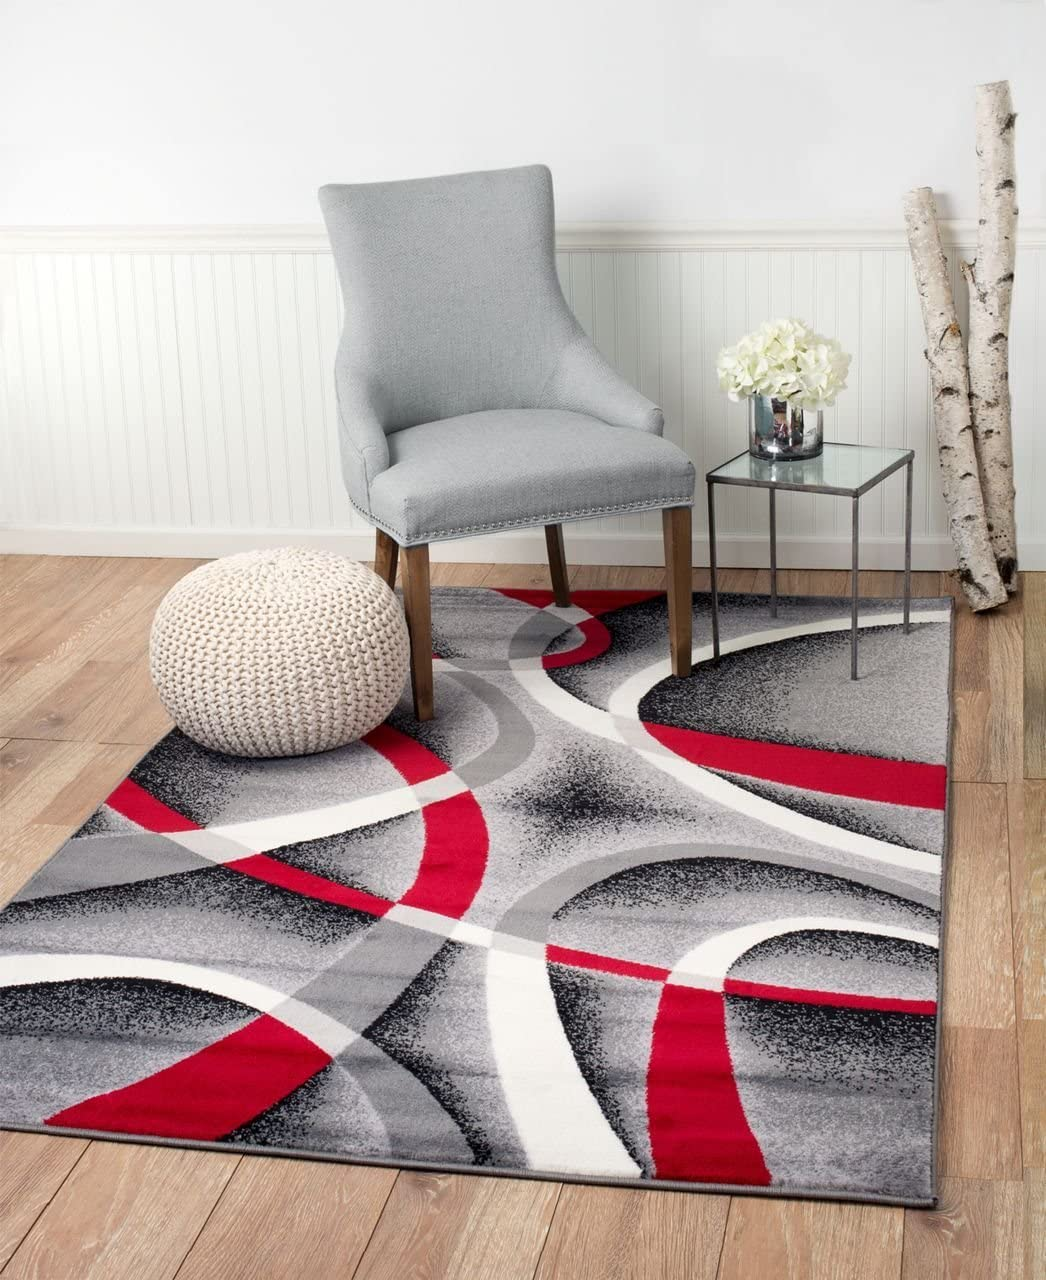 Summit St34 Area Rug Black Red Gray Modern Abstract Many Aprx Sizes Available 3 8 X 5 4 X 5 Actual Is 3 8 X 5 Furniture Decor Amazon Com